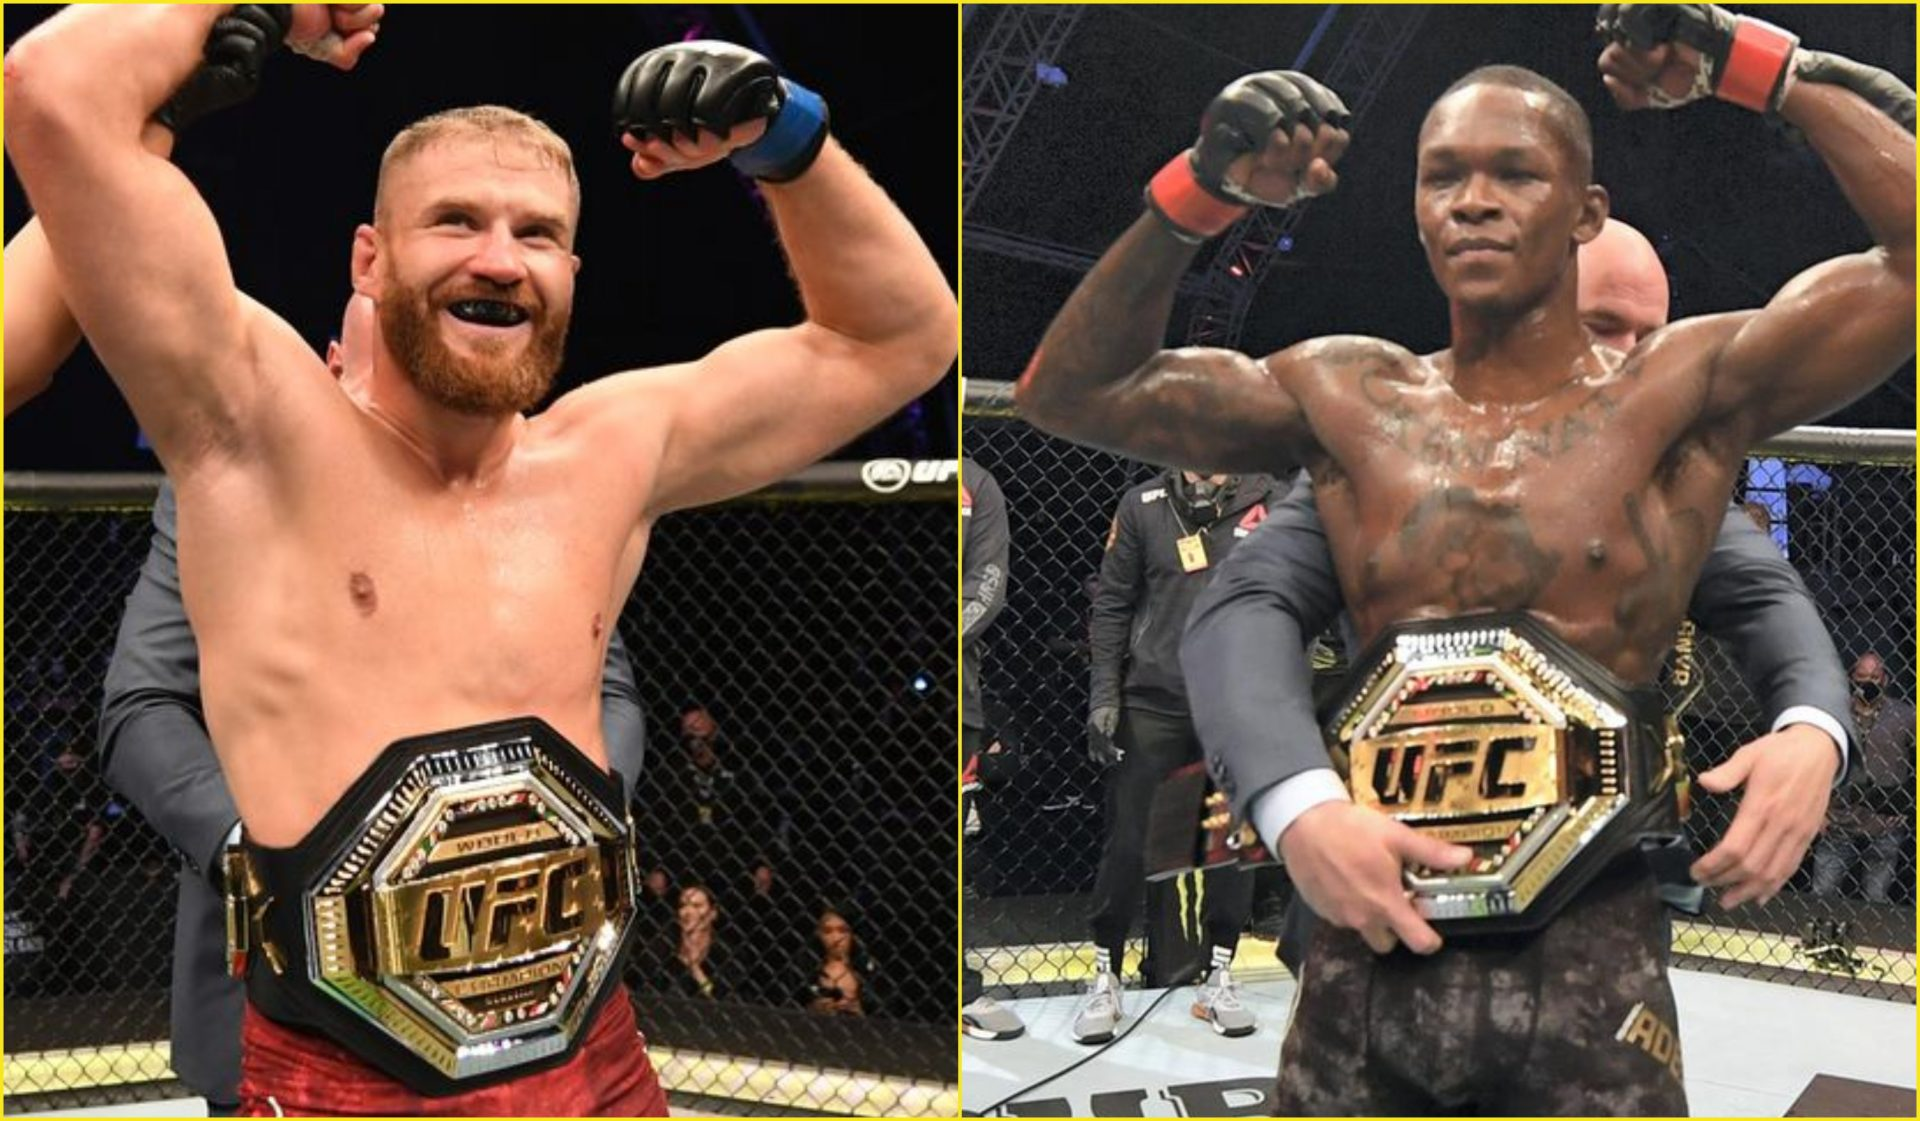 Jan Blachowicz is ready for a super fight against middleweight champion Israel Adesanya - Blachowicz